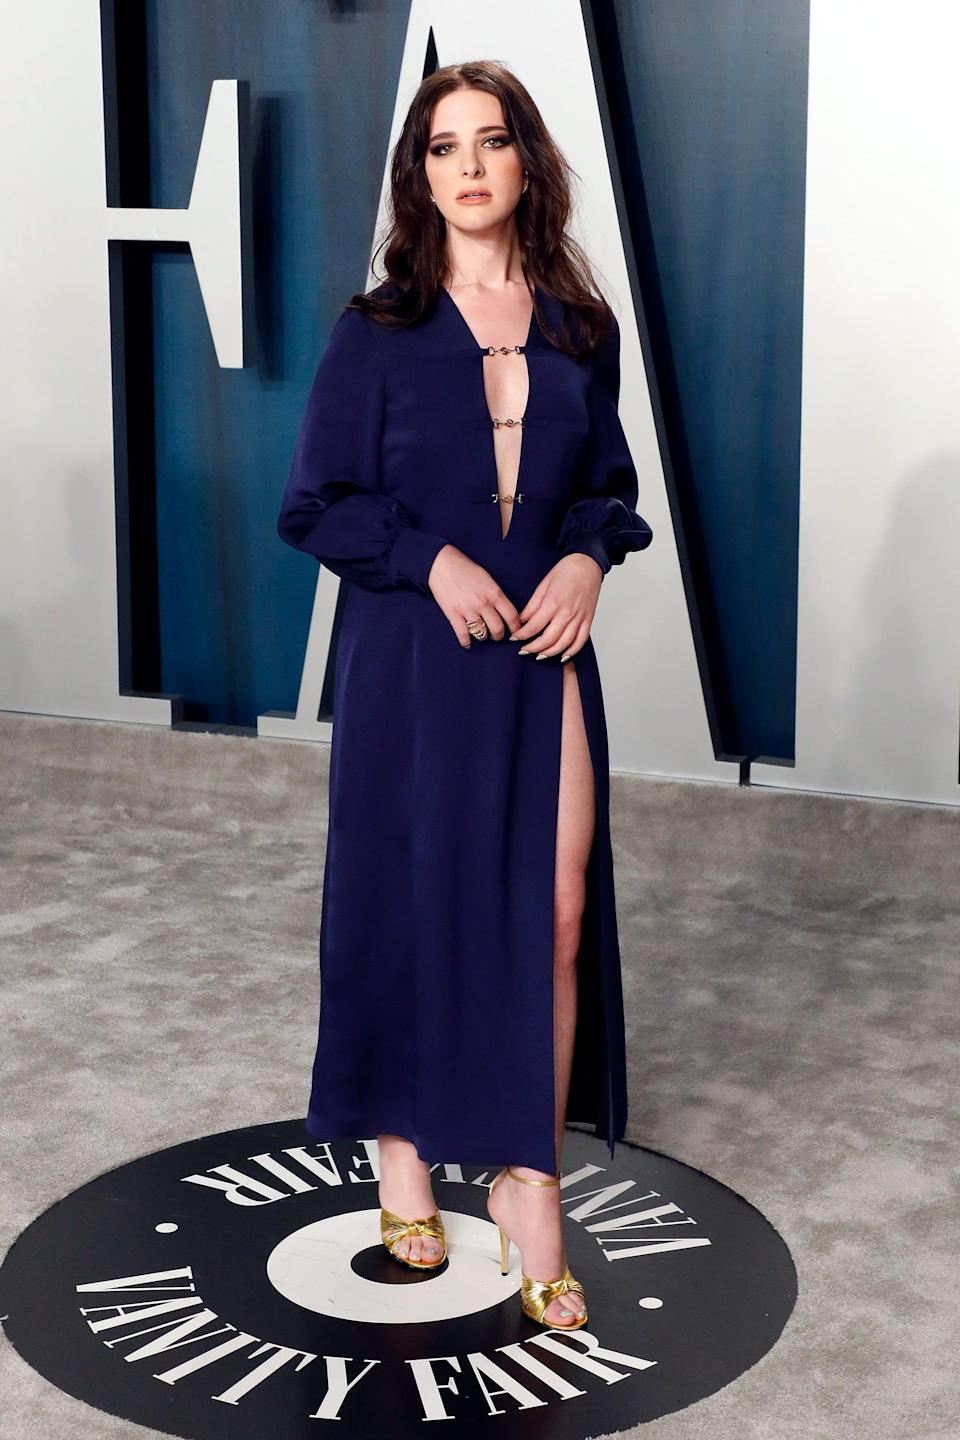 <p>Hari Nef catapulted into the limelight in 2015 after becoming the first trans model to be signed to the modeling agency IMG models. Since then, she has made a splash in the fashion scene and has gone along to star in the movie <strong>Assassination Nation</strong> and made an appearance in the first season of the hit Netflix show <strong>You</strong>. </p>